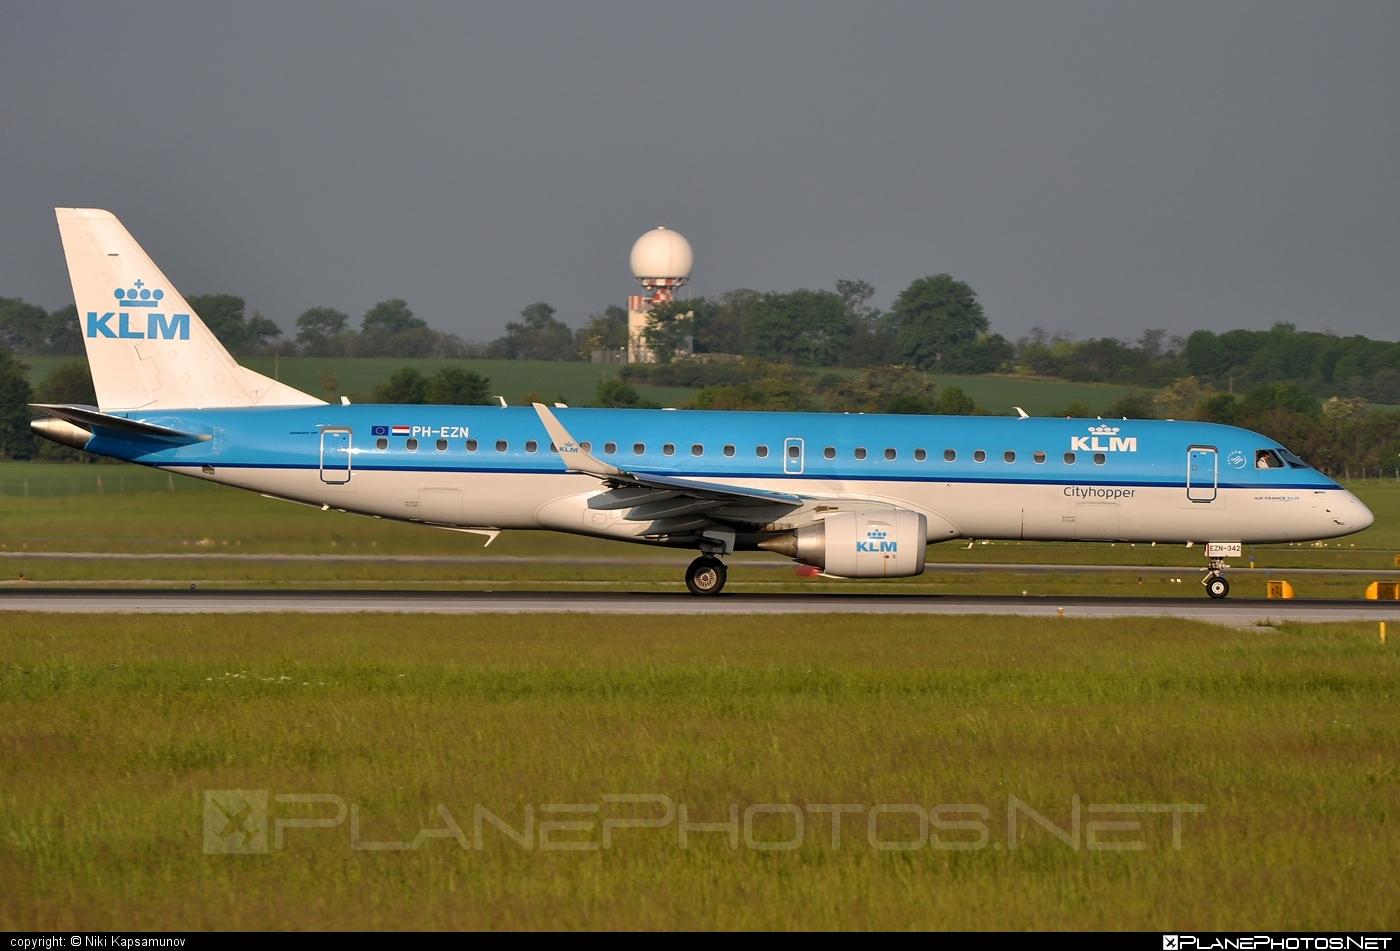 Embraer 190-100STD - PH-EZN operated by KLM Cityhopper #e190 #embraer #embraer190 #embraer190std #klm #klmcityhopper